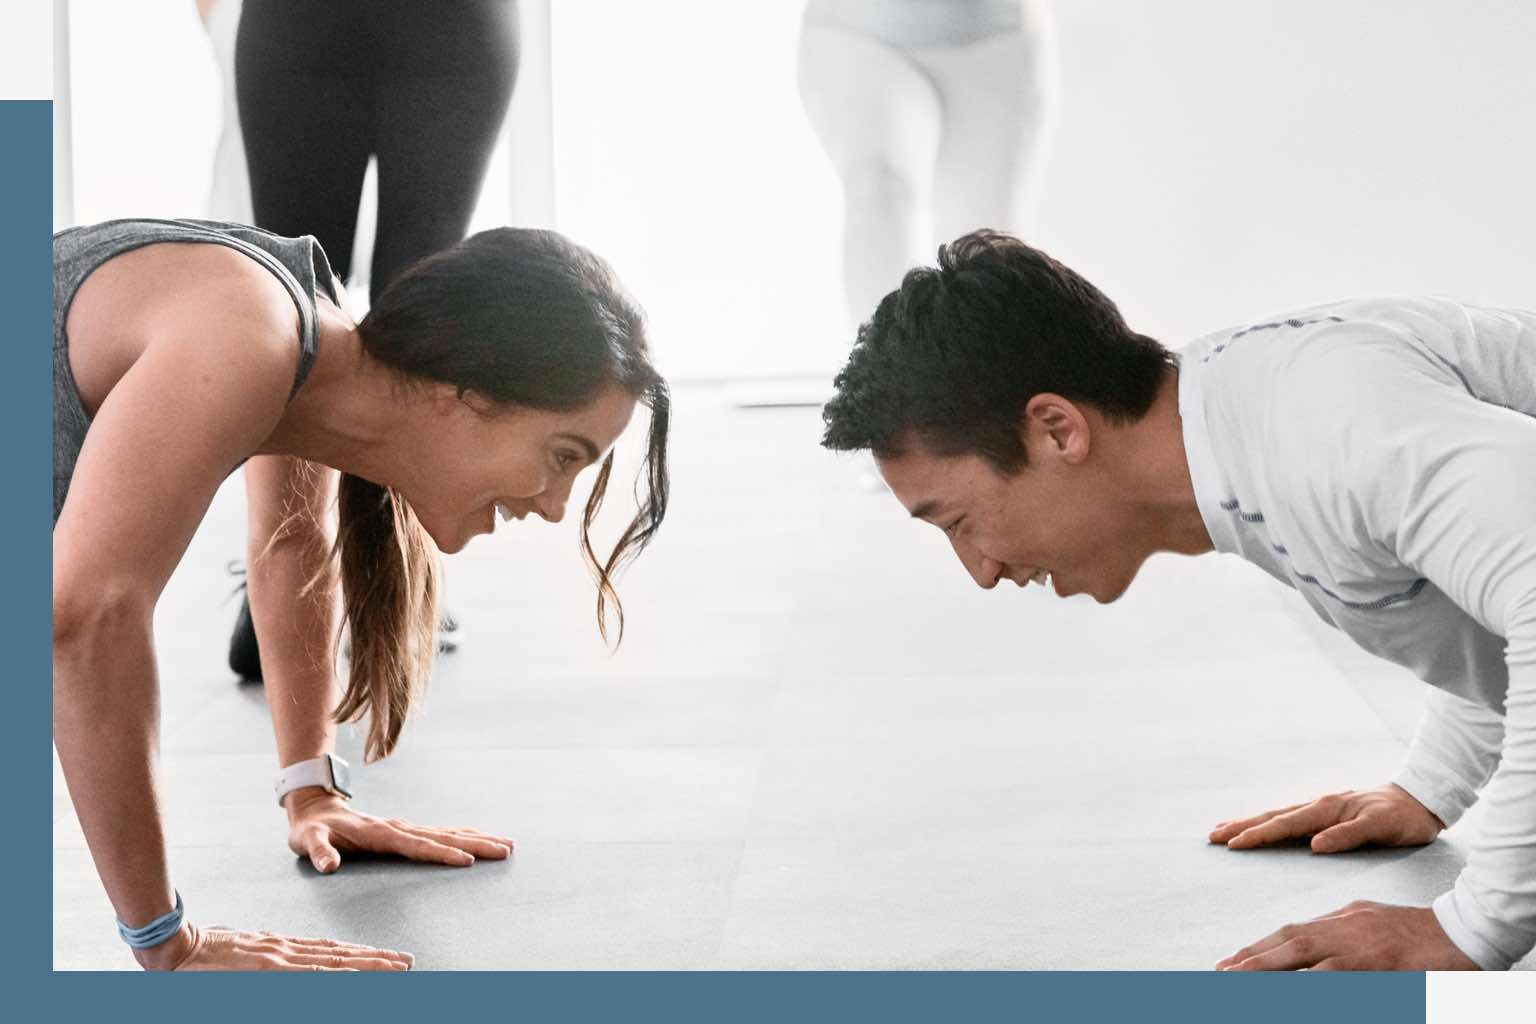 A woman in gray tank top and a man in a long-sleeved white workout shirt face each other while holding the push-up position